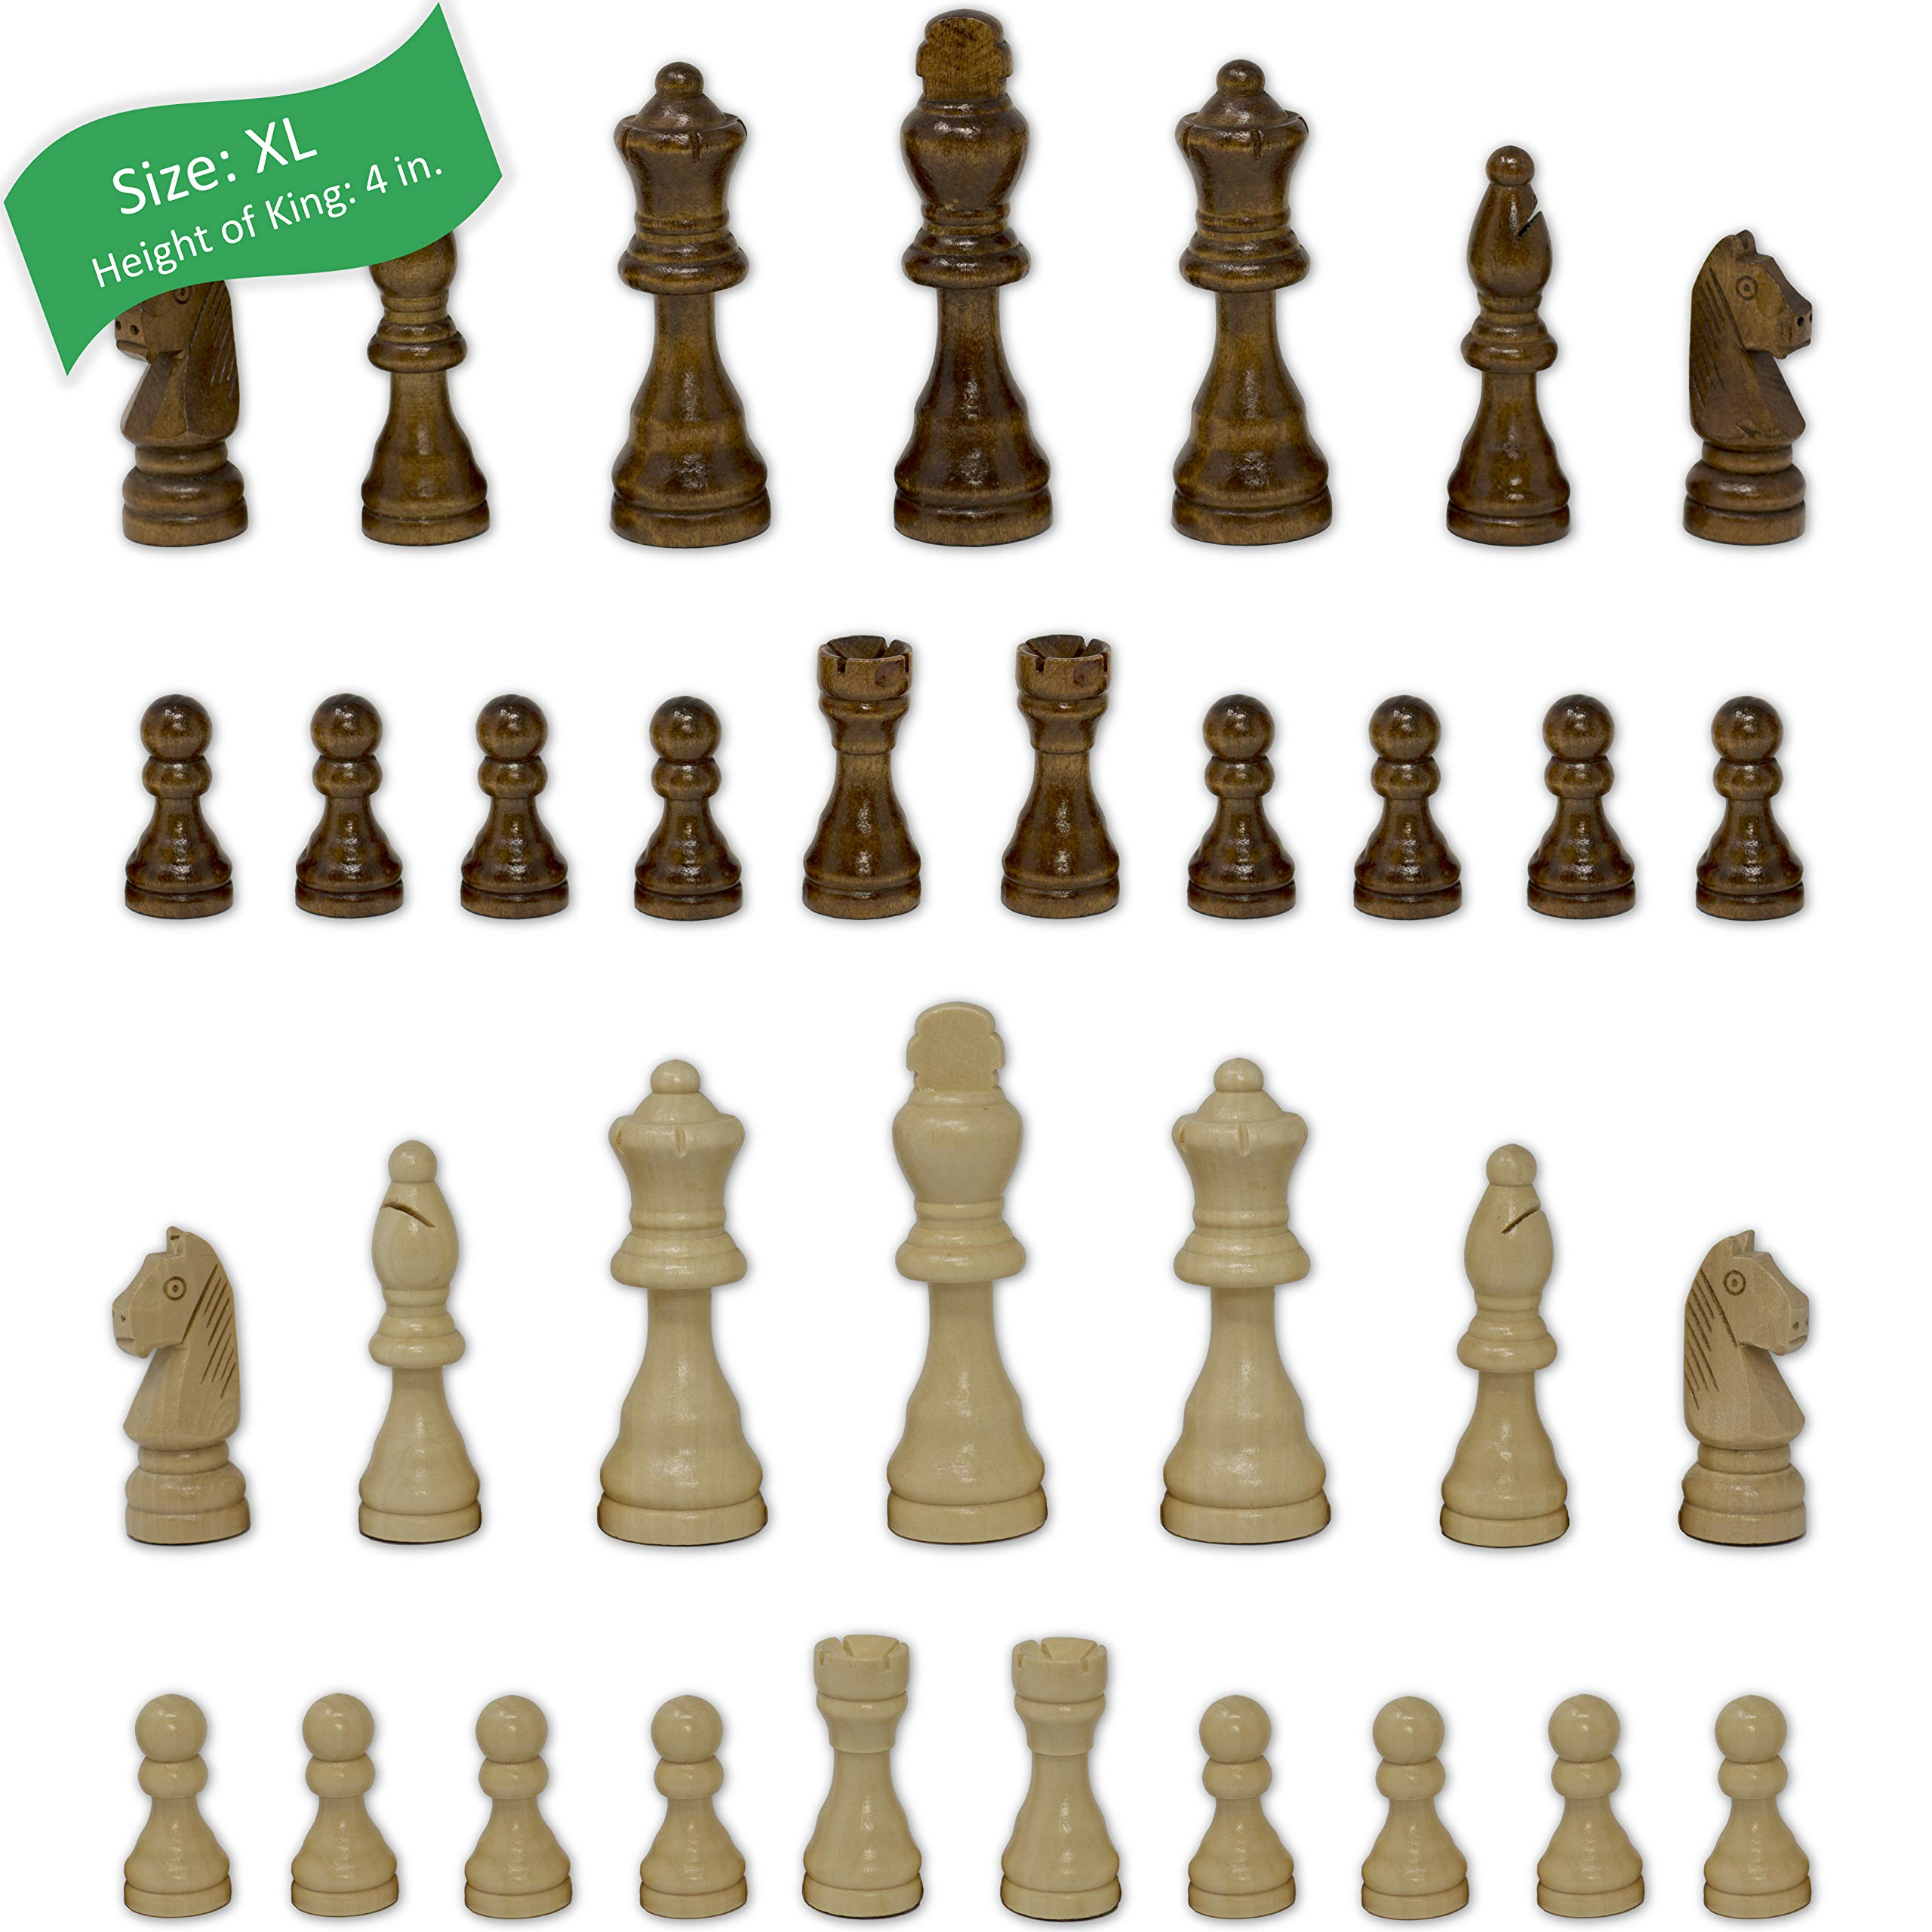 Staunton Chess Pieces by GrowUpSmart with Extra Queens | Size: XLarge - King Height: 4 inches | Wood